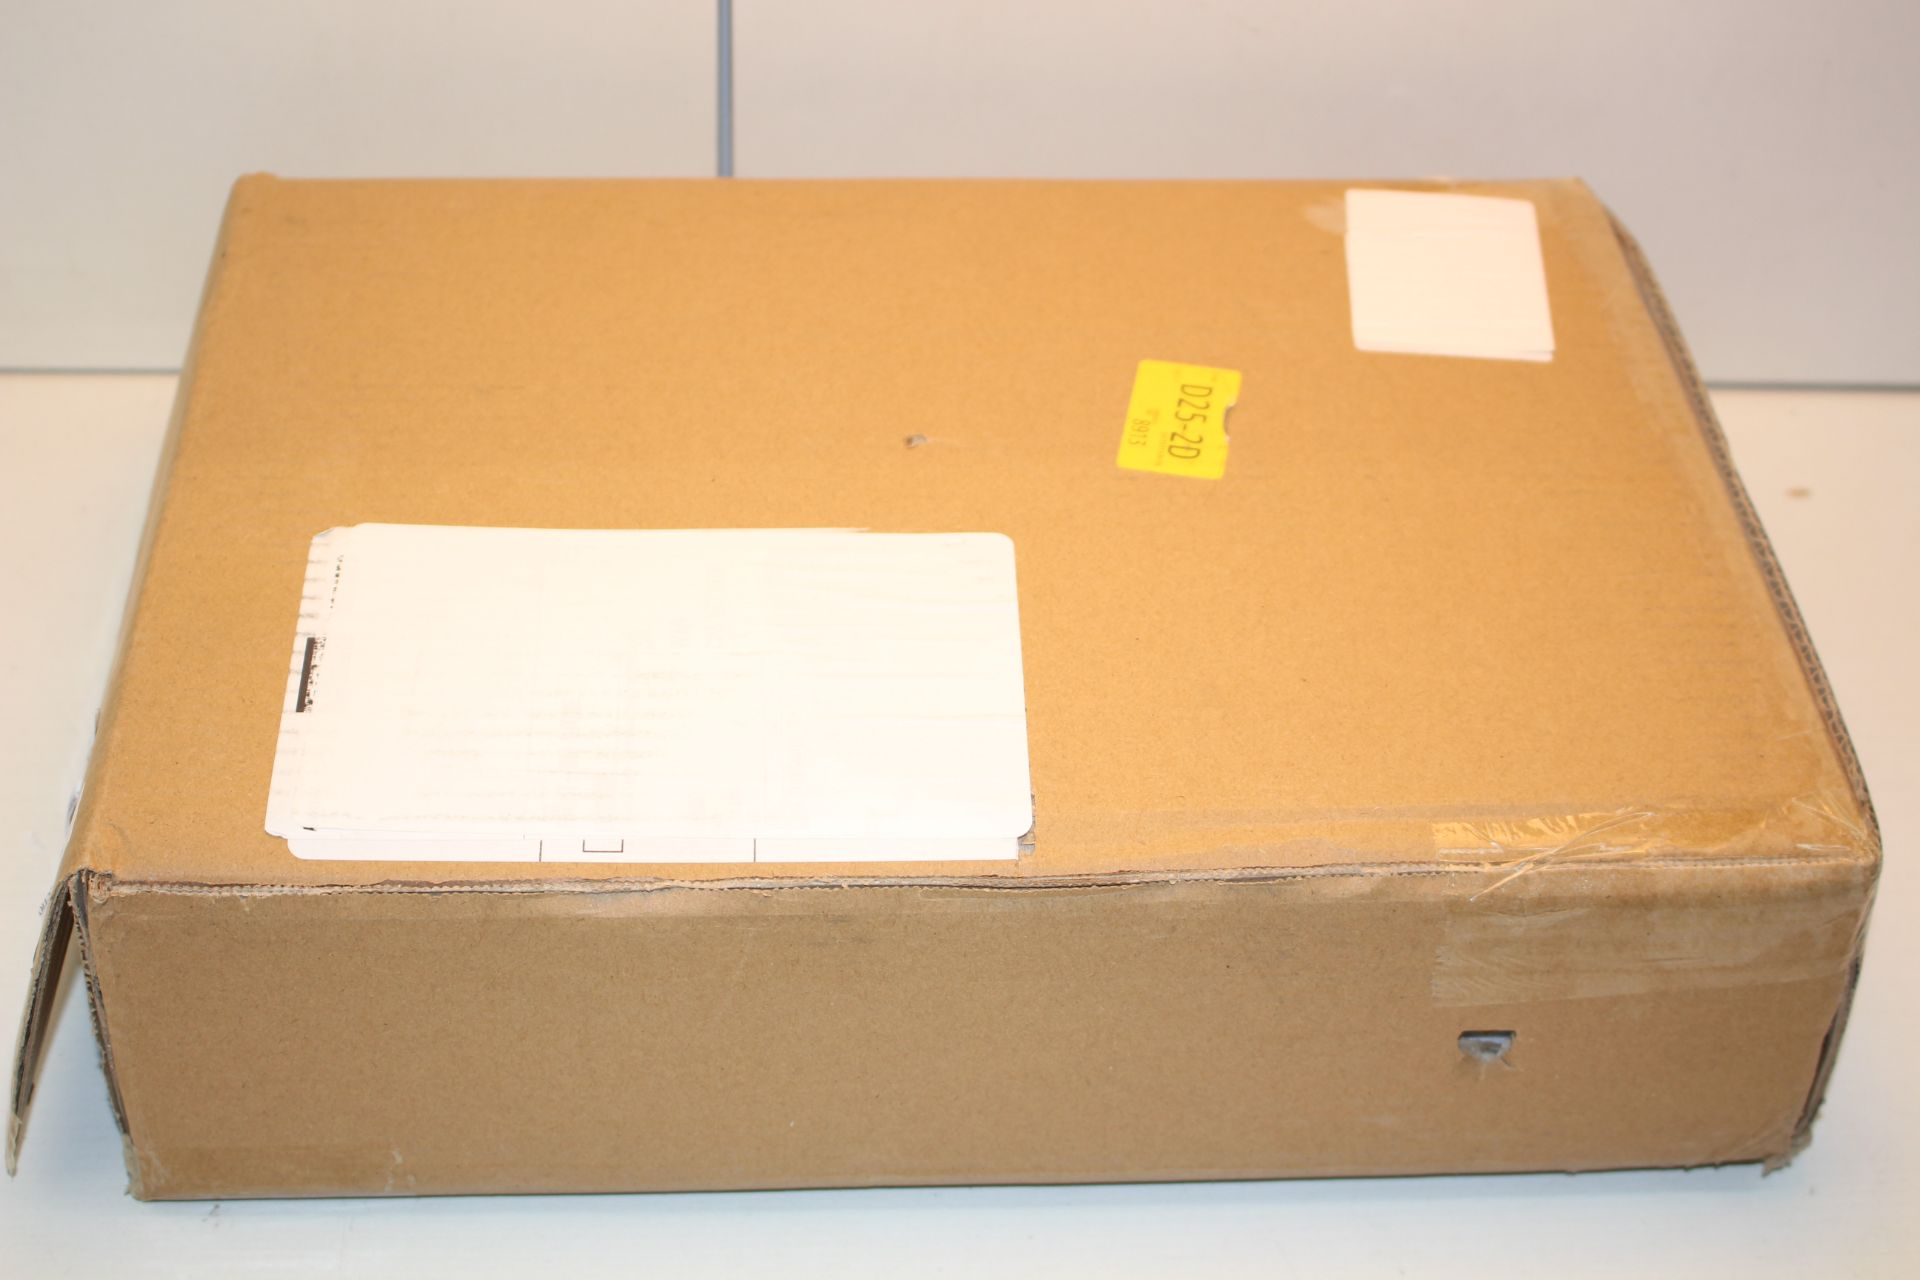 BOXED FLATPACKED WOODEN STORAGE BOX Condition ReportAppraisal Available on Request- All Items are